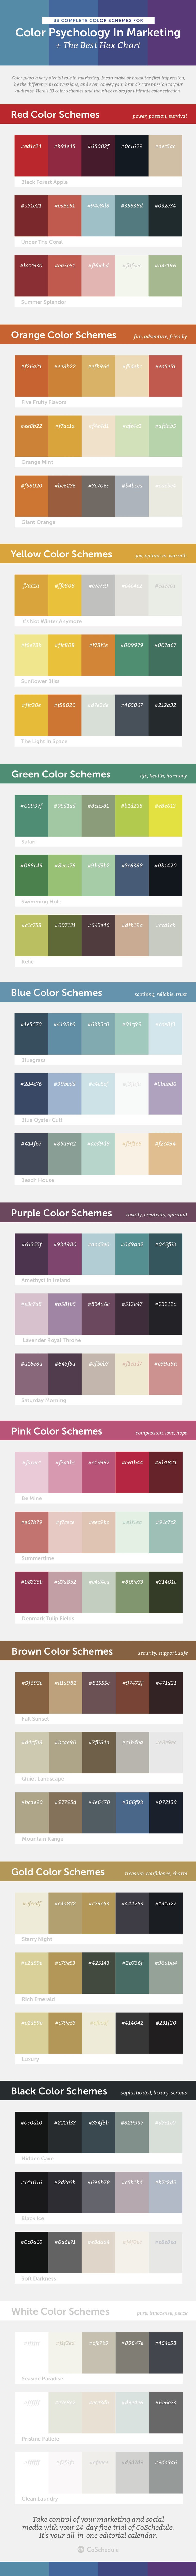 33 Beautiful Color Schemes For Graphic, Web, UI And Marketing Design